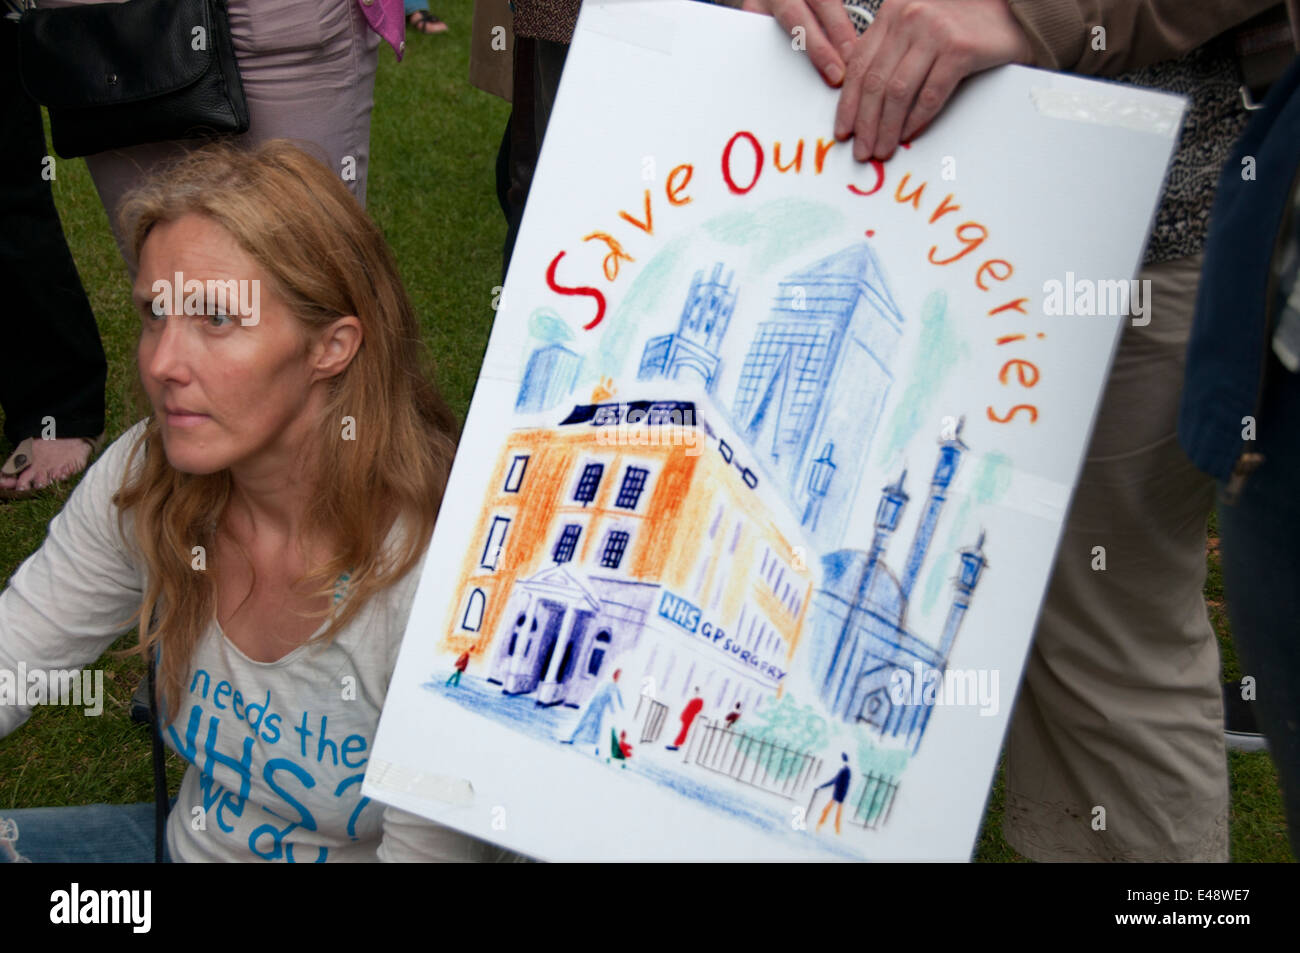 East End, London July 5th 2014. Rally and march against proposed cuts to National Health Service doctors' surgeries - Stock Image